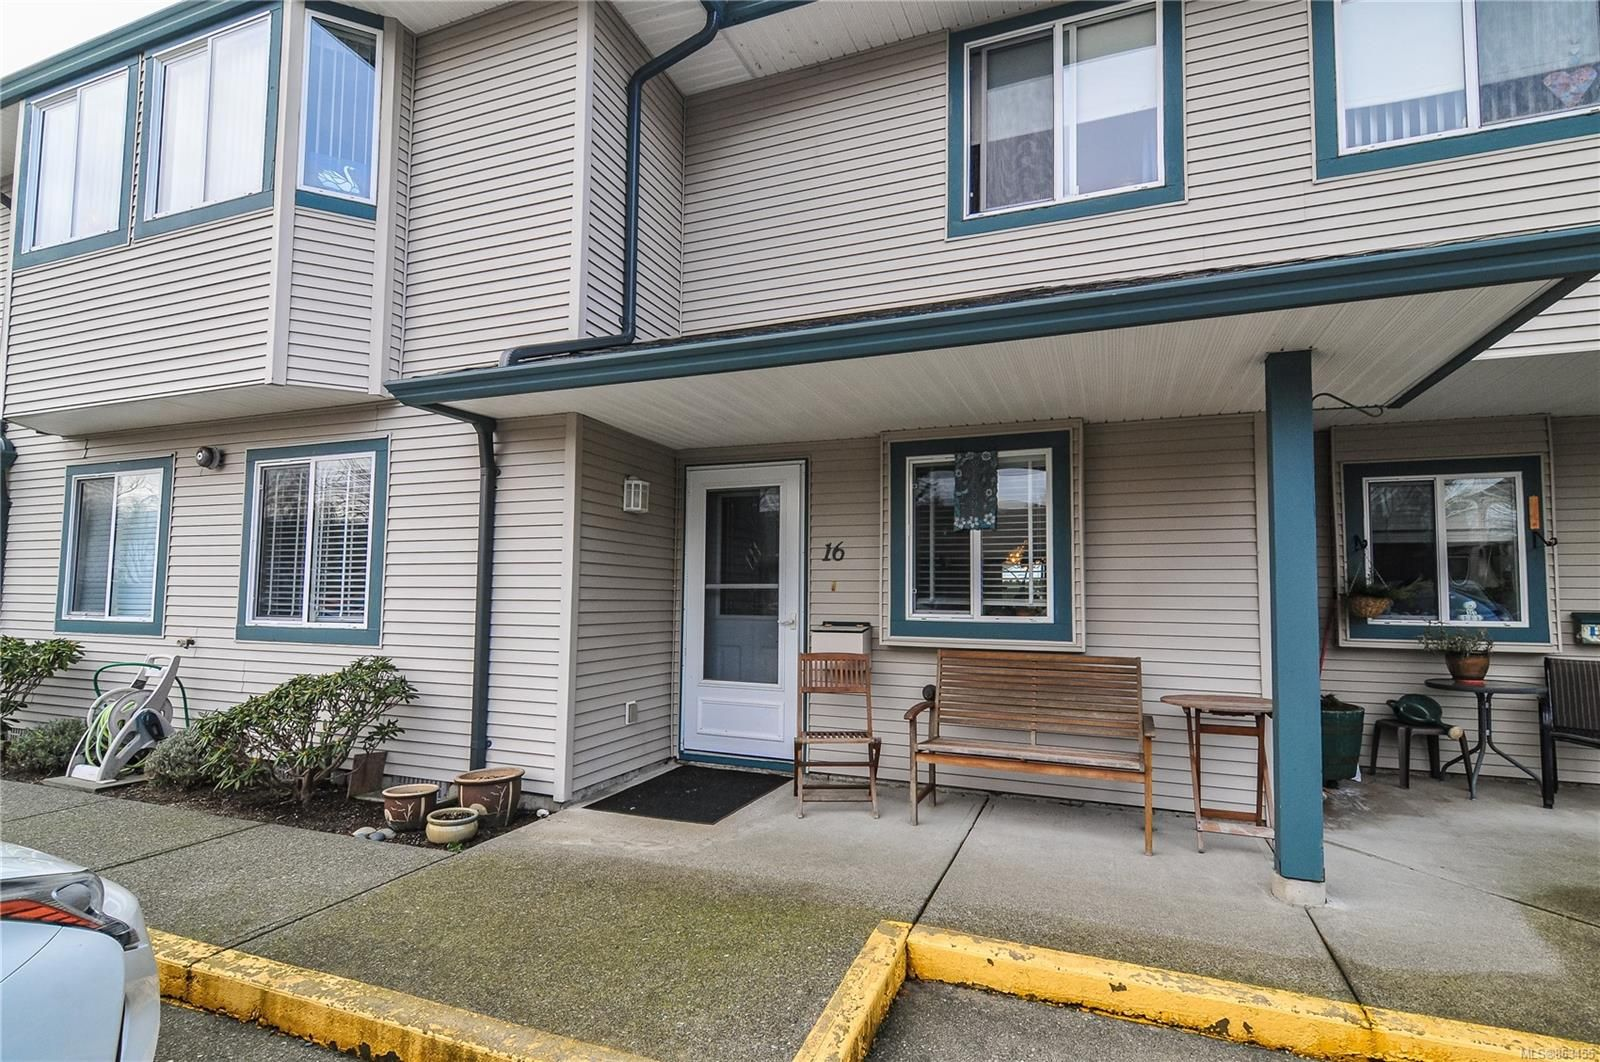 Main Photo: 16 2317 Dalton Rd in : CR Willow Point Row/Townhouse for sale (Campbell River)  : MLS®# 863455